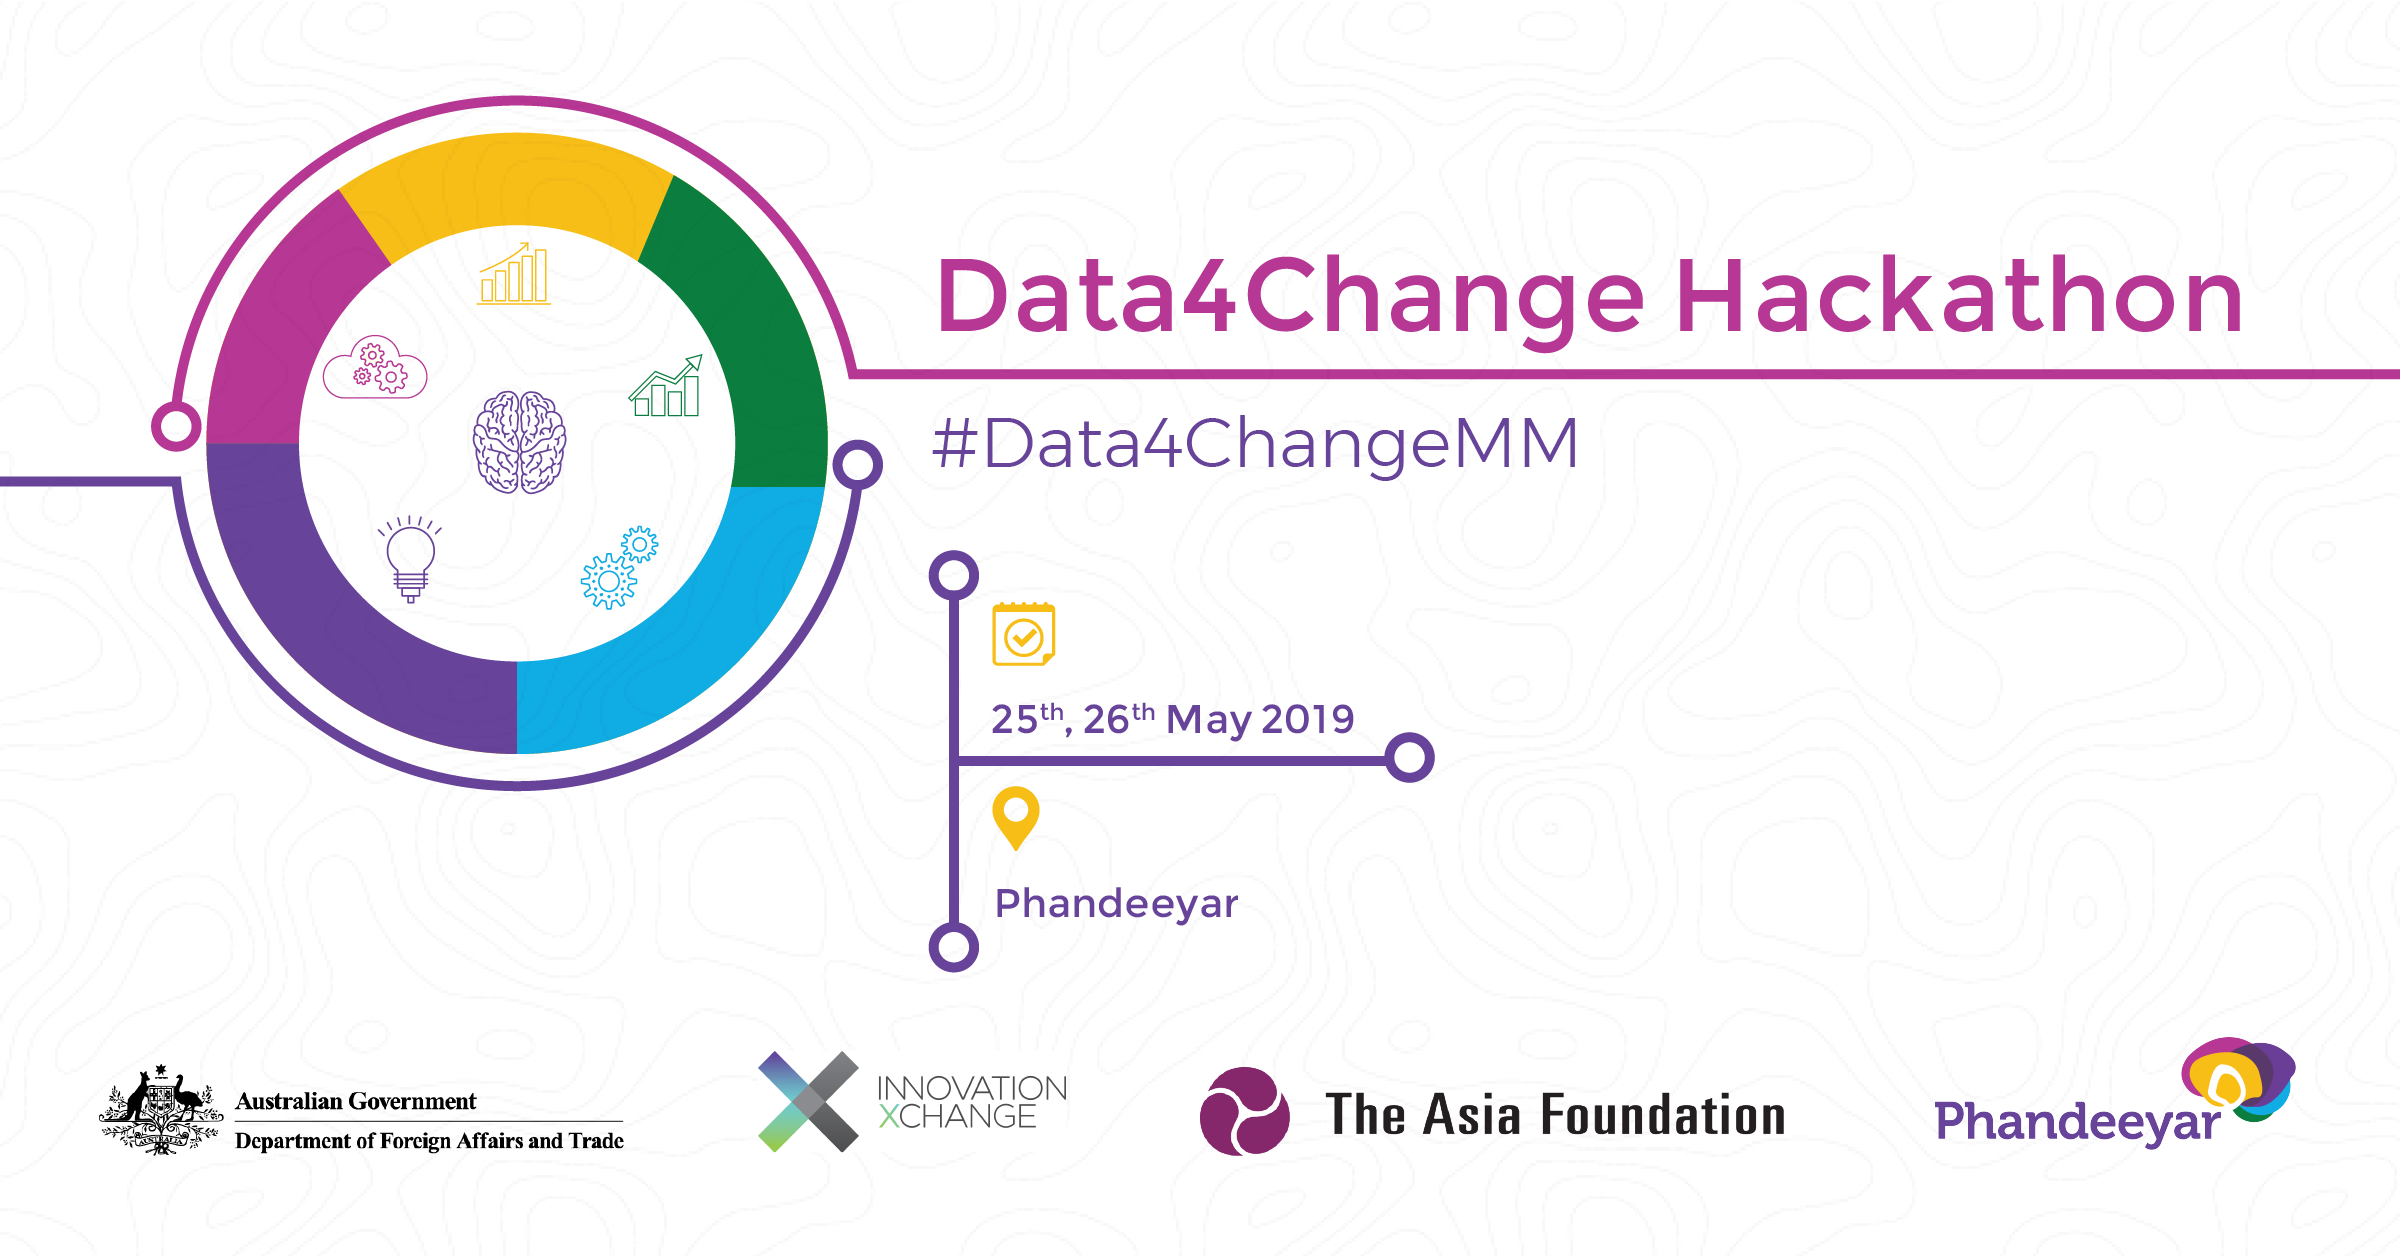 Data4Change Hackathon Banner Image